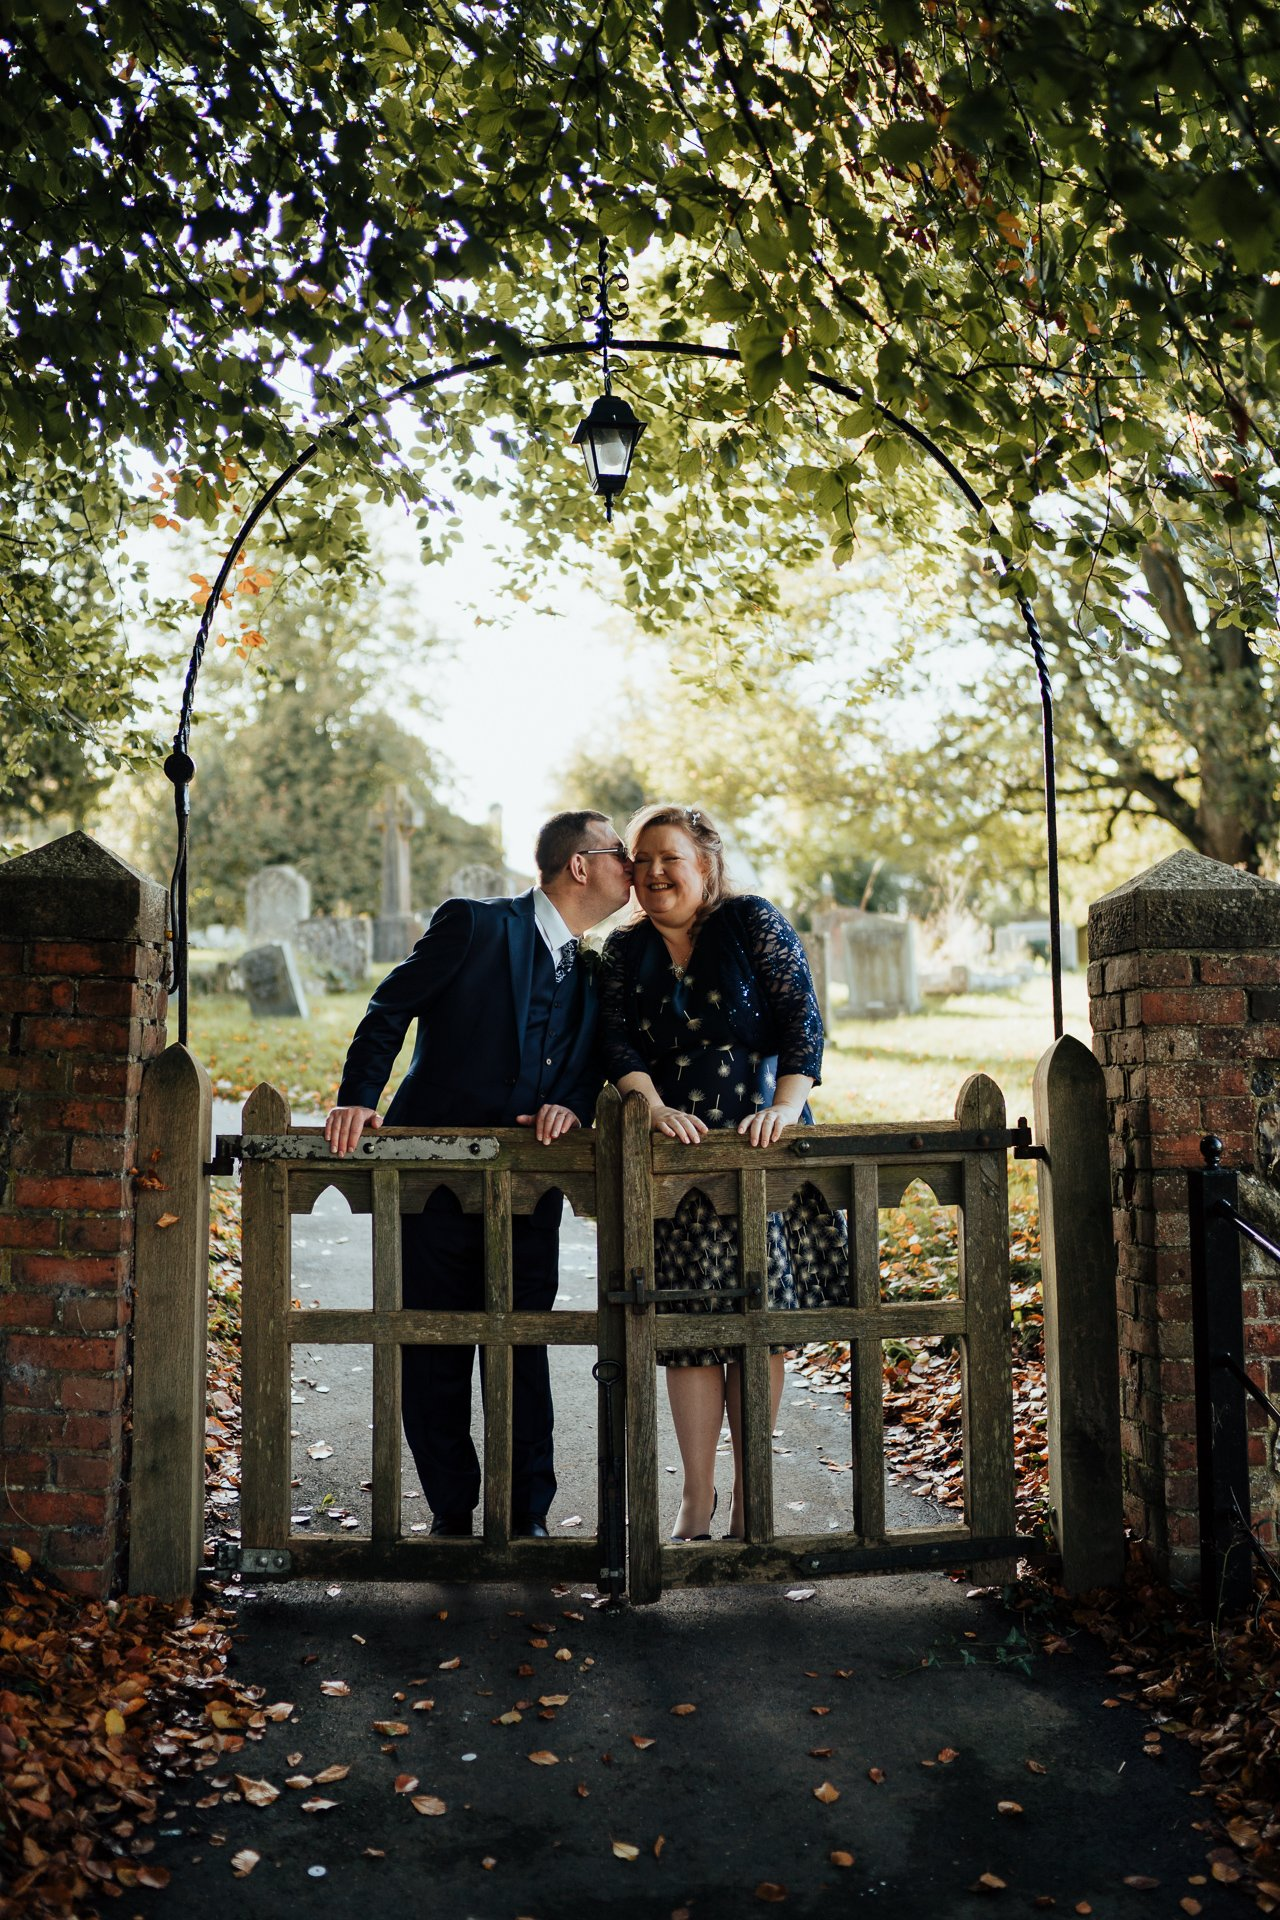 Bride and Groom laughing together and kissing outside their church wedding venue